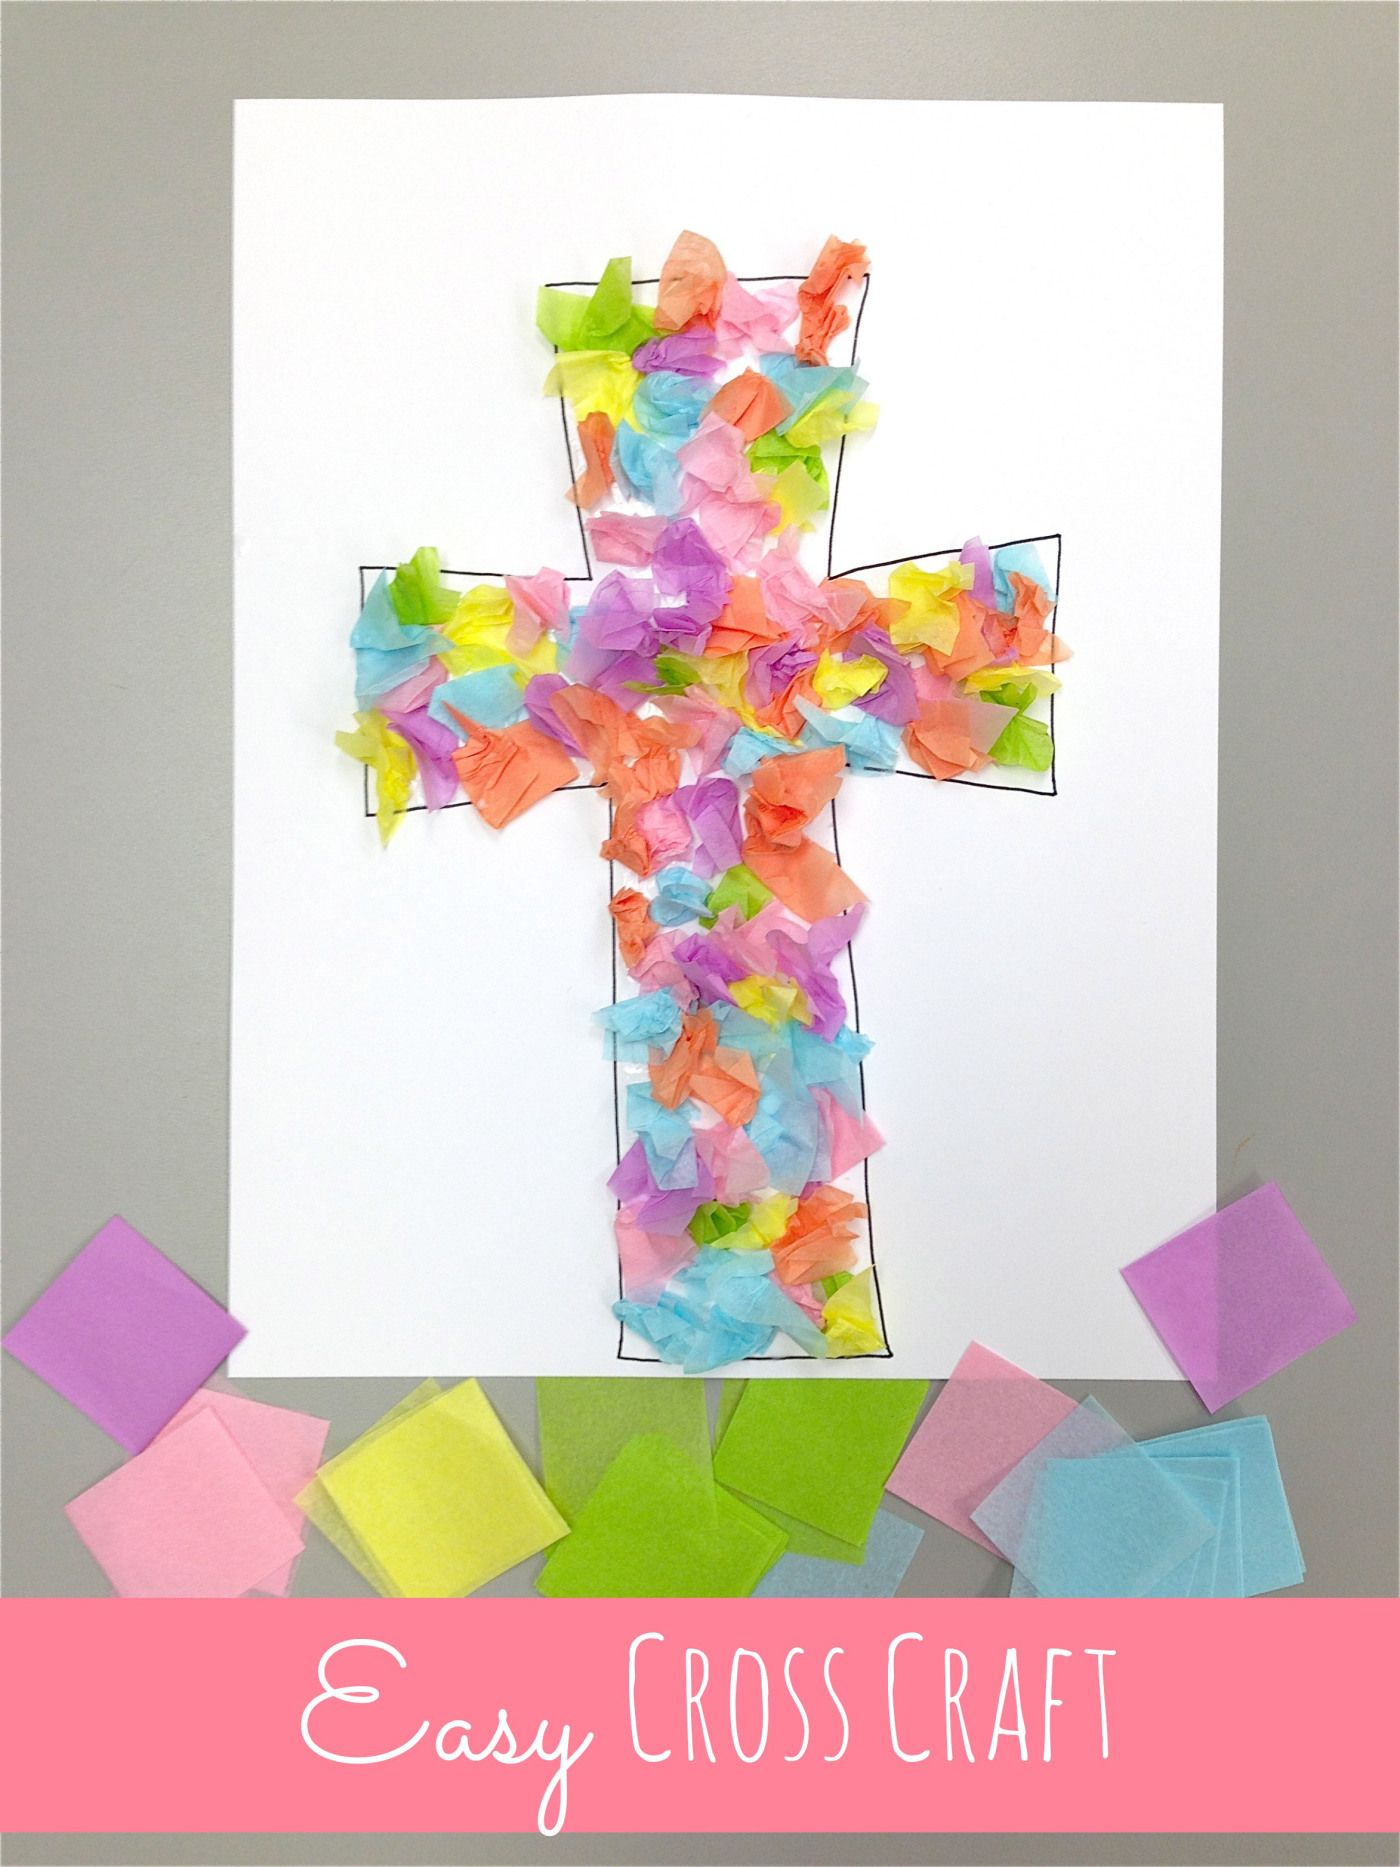 Easy Cross Craft Kids Crafts Easter Crafts Easter Activities